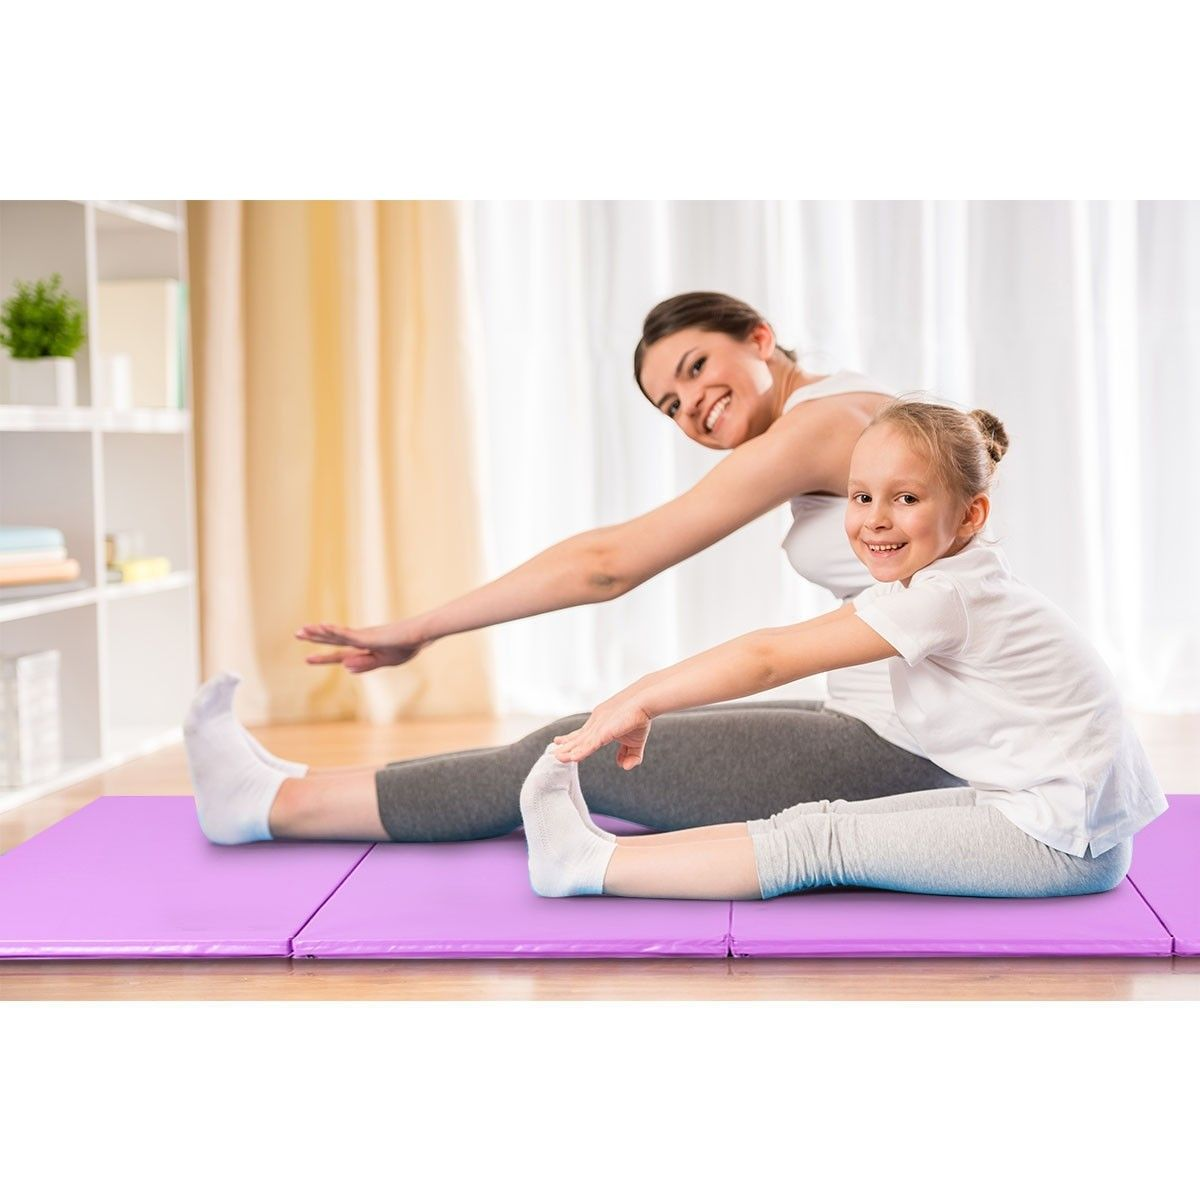 Portable Gymnastic Fitness Exercise Mat